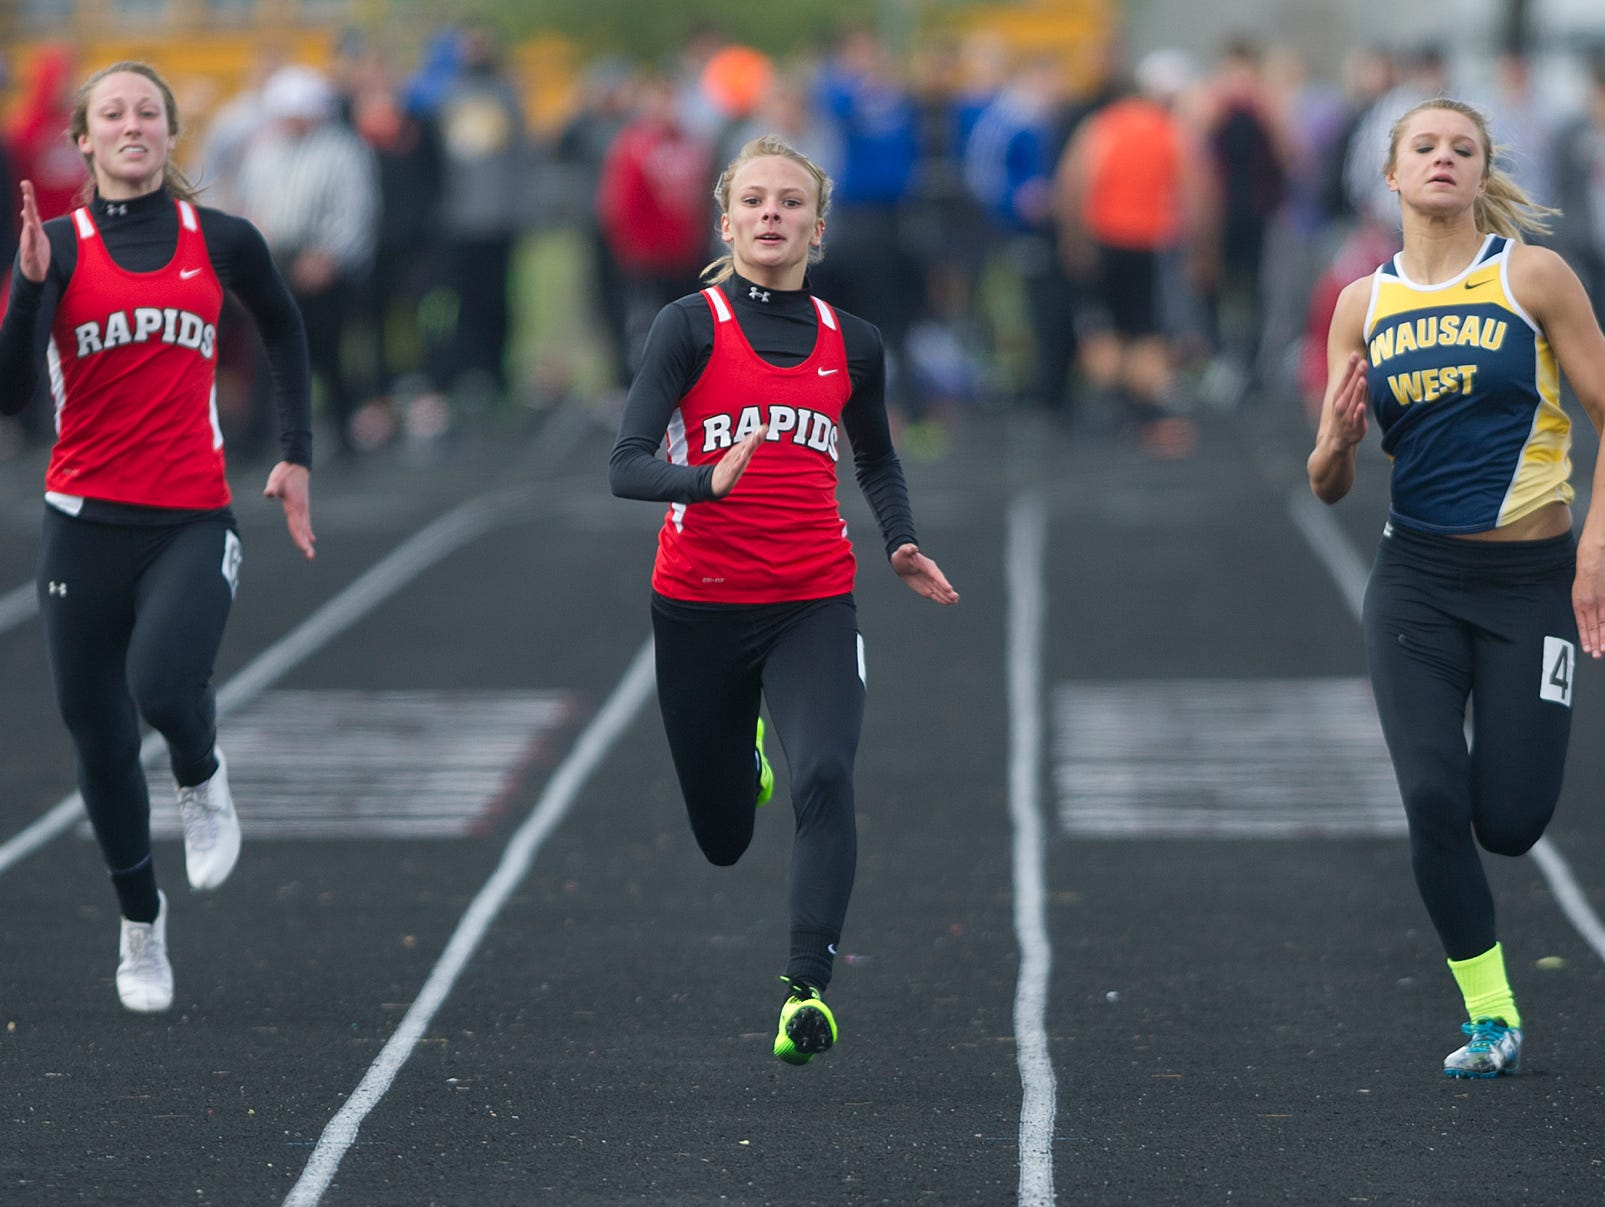 From left, Wisconsin Rapids' Elizabeth Keena, teammate Grace Hartman, and Wausau West's Alyssa Faucett compete in the 100 meter dash during the Wisconsin Valley Conference Track Meet at South Wood County Field in Wisconsin Rapids, Tuesday, May 19, 2015.